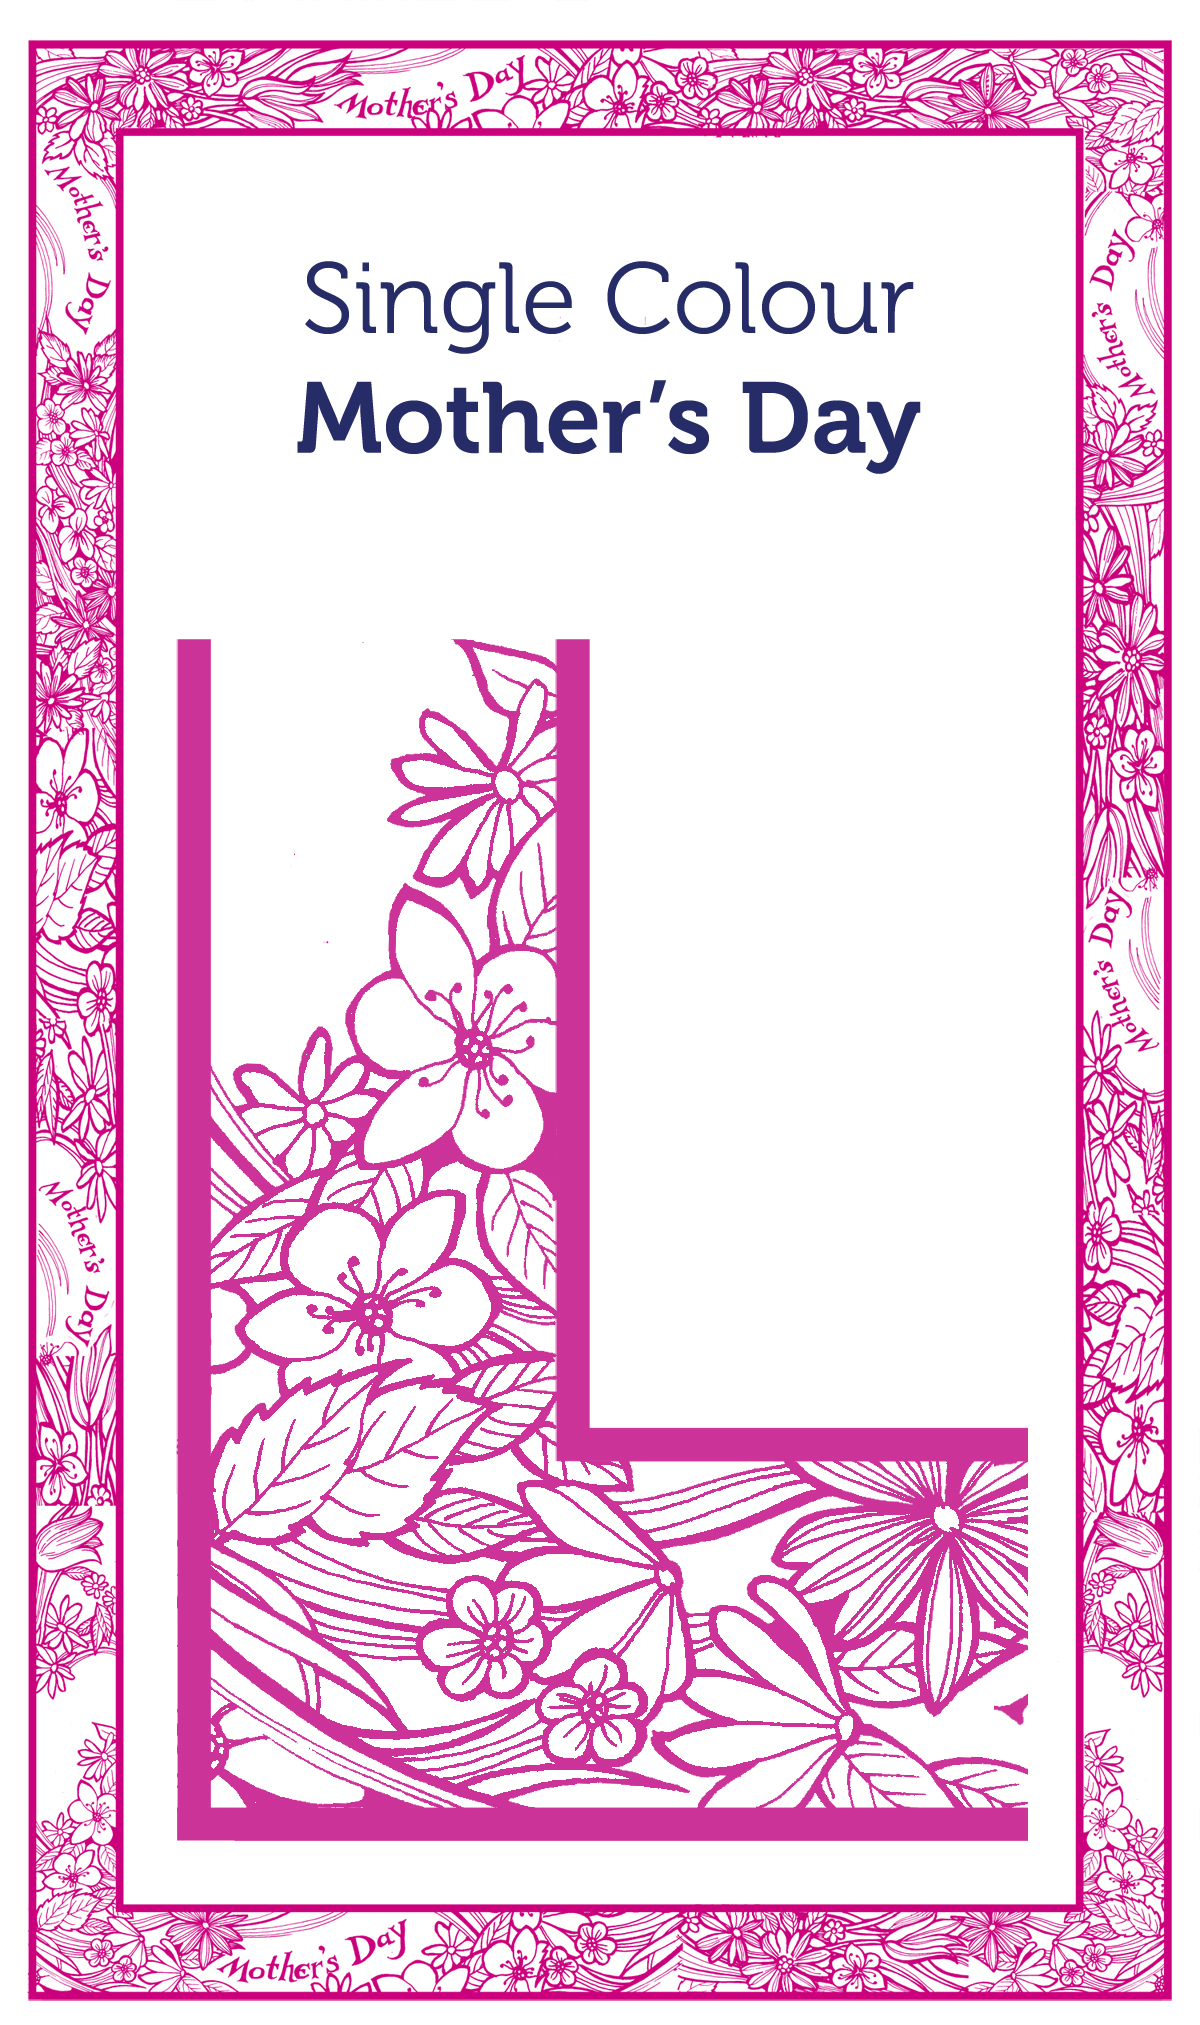 12_MothersDay_SingleColour